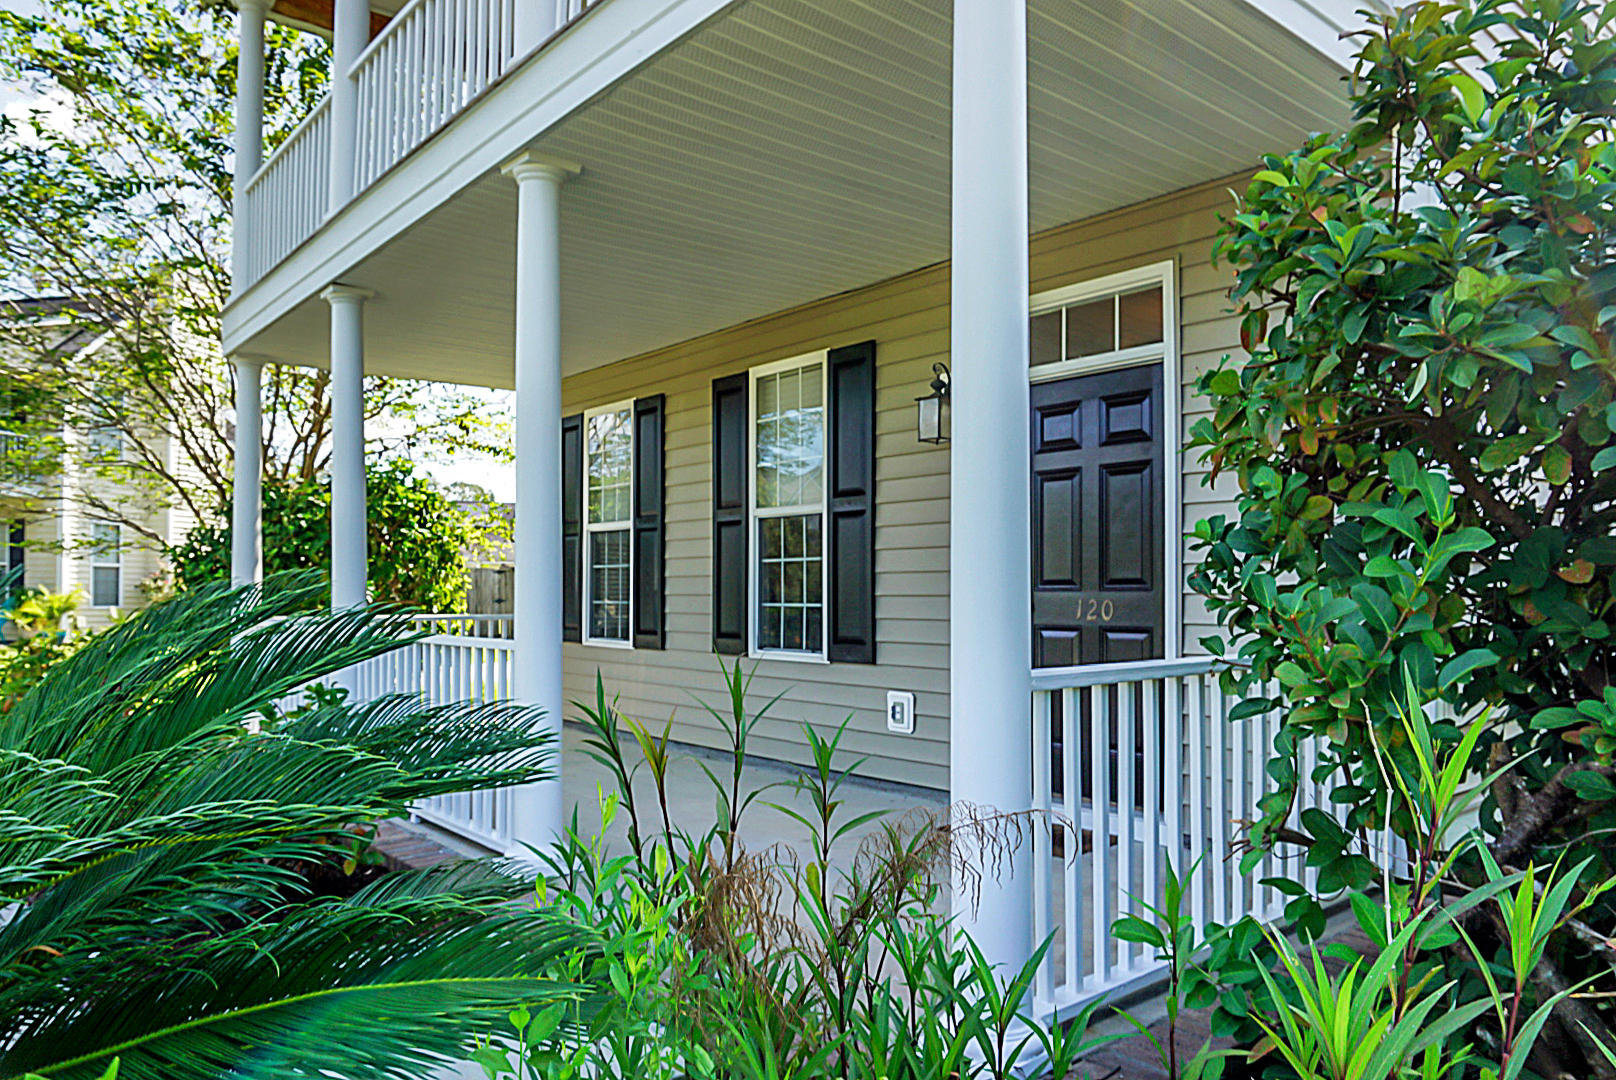 Heatherwoods Homes For Sale - 120 Full Moon, Ladson, SC - 38